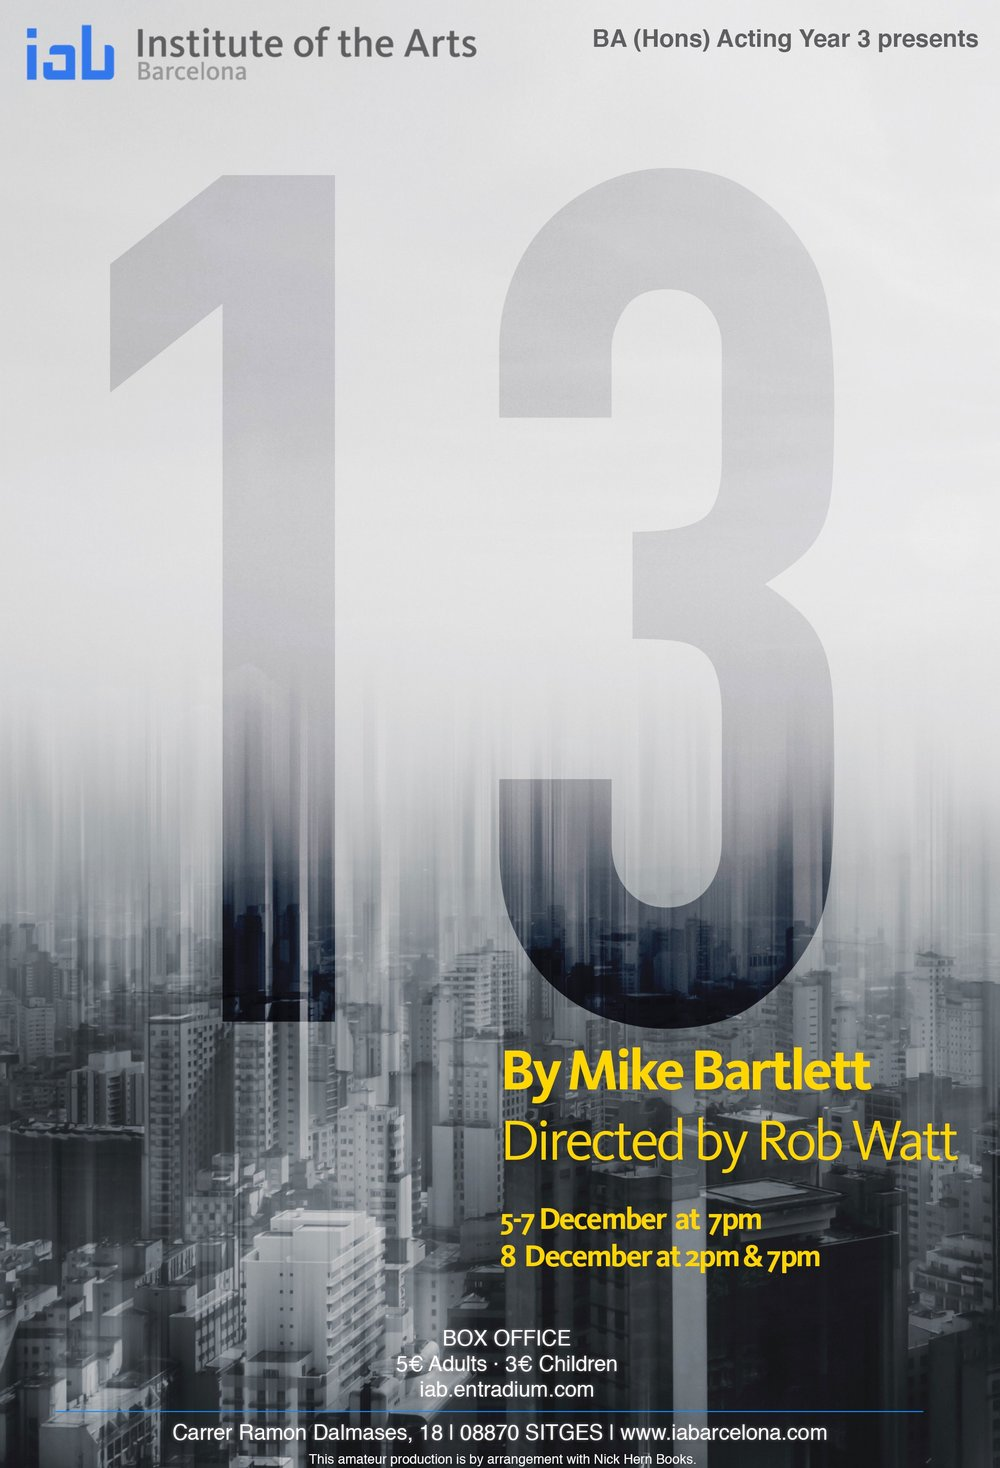 13 by Mike Bartlett - BA (Hons) Acting Year 3